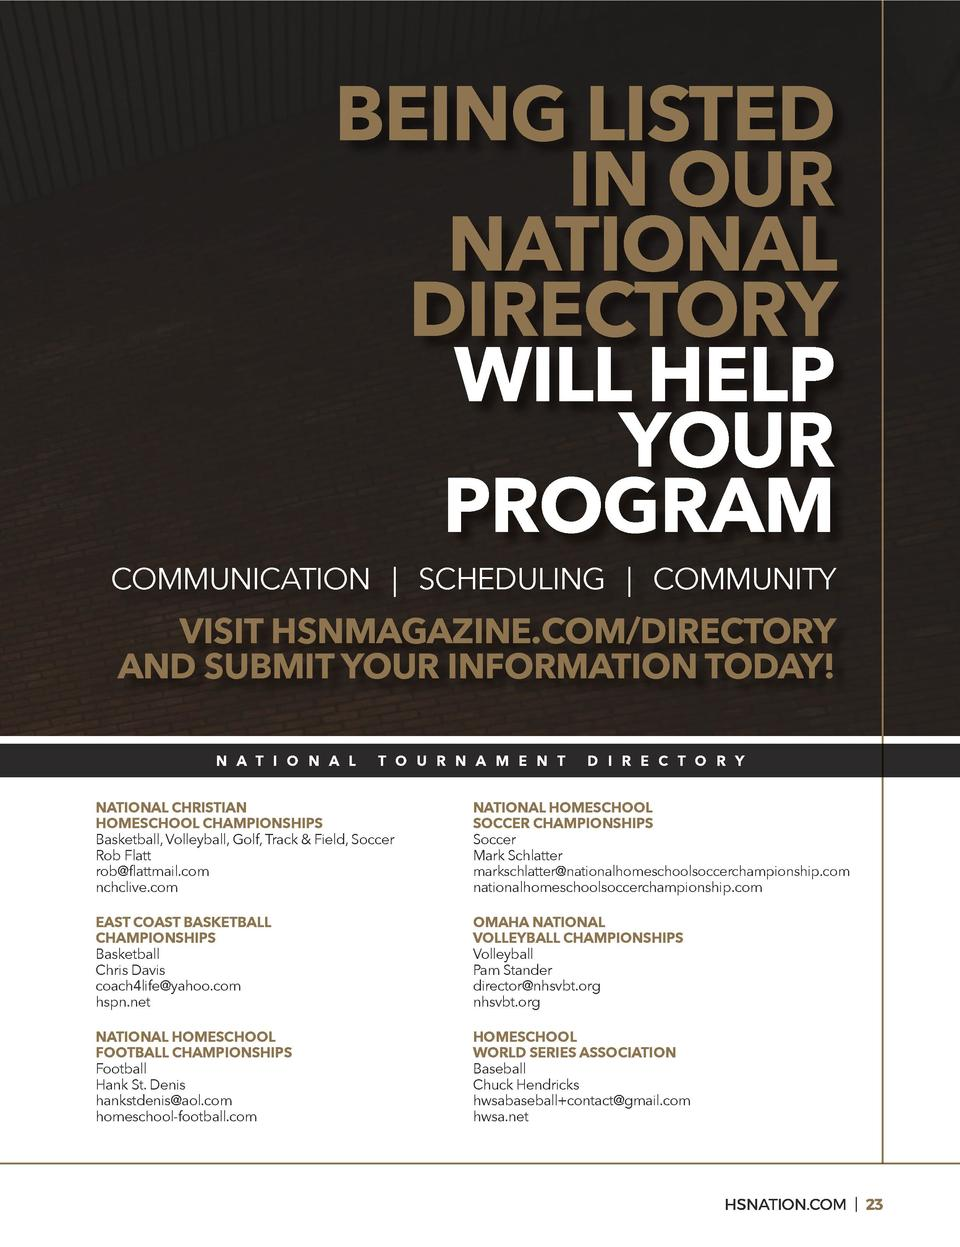 BEING LISTED IN OUR NATIONAL DIRECTORY WILL HELP YOUR PROGRAM  COMMUNICATION   SCHEDULING   COMMUNITY  VISIT HSNMAGAZINE.C...